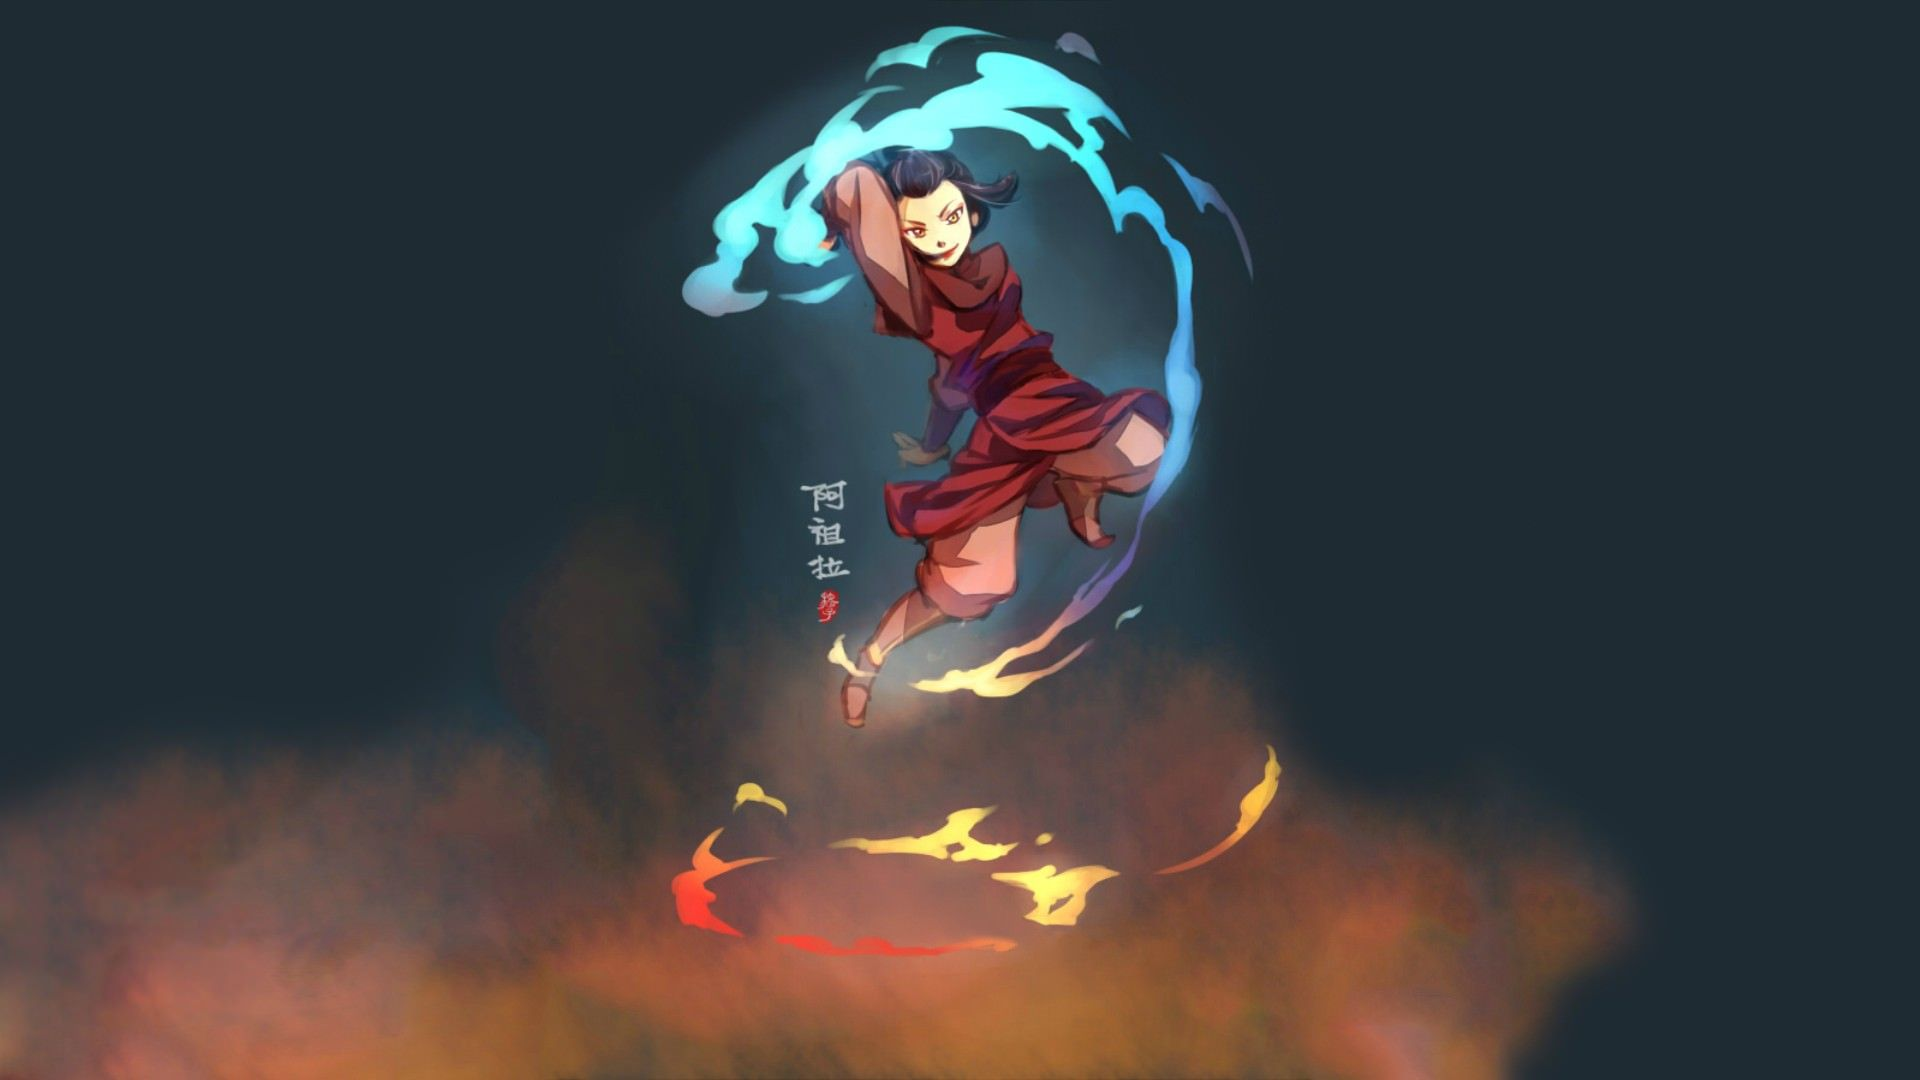 High Definition Mobile Phone And Desktop Wallpapers Avatar The Last Airbender The Last Airbender Azula